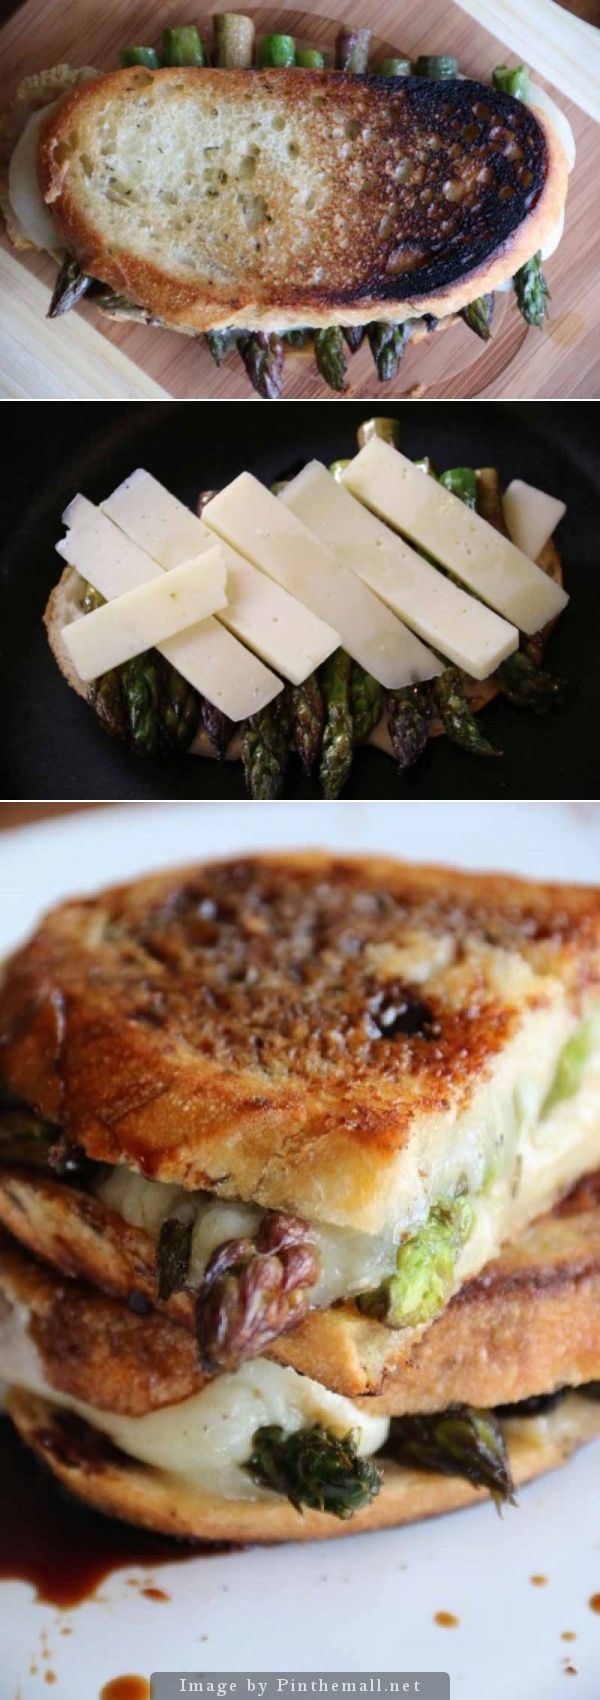 Asparagus Grilled Cheese Sandwich | Yumminess | Pinterest